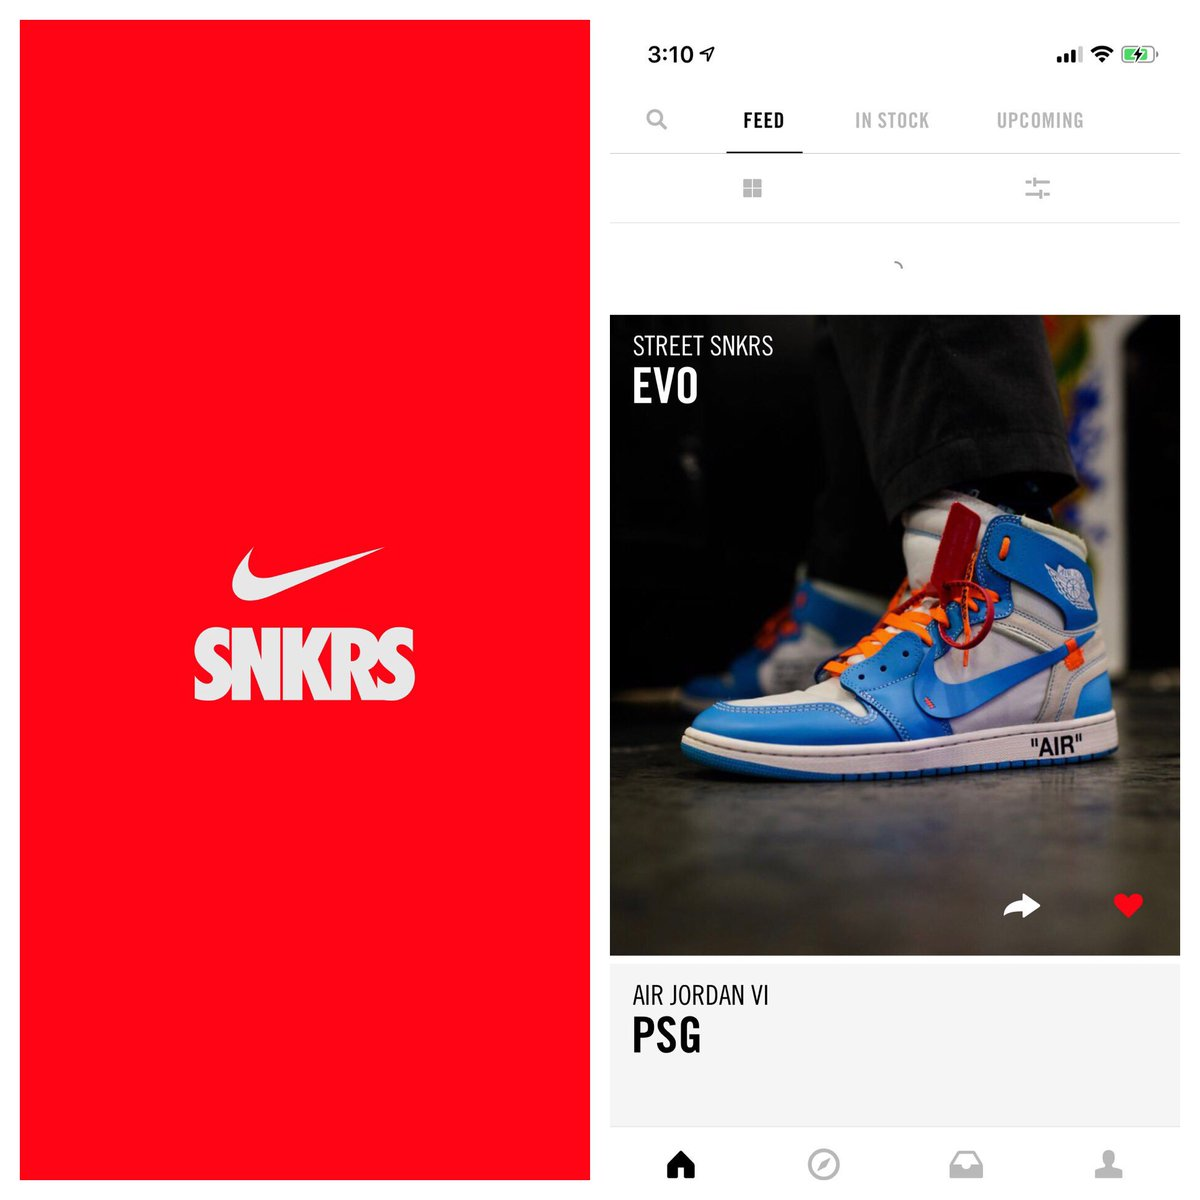 SNKRS app! Are you into fighting games